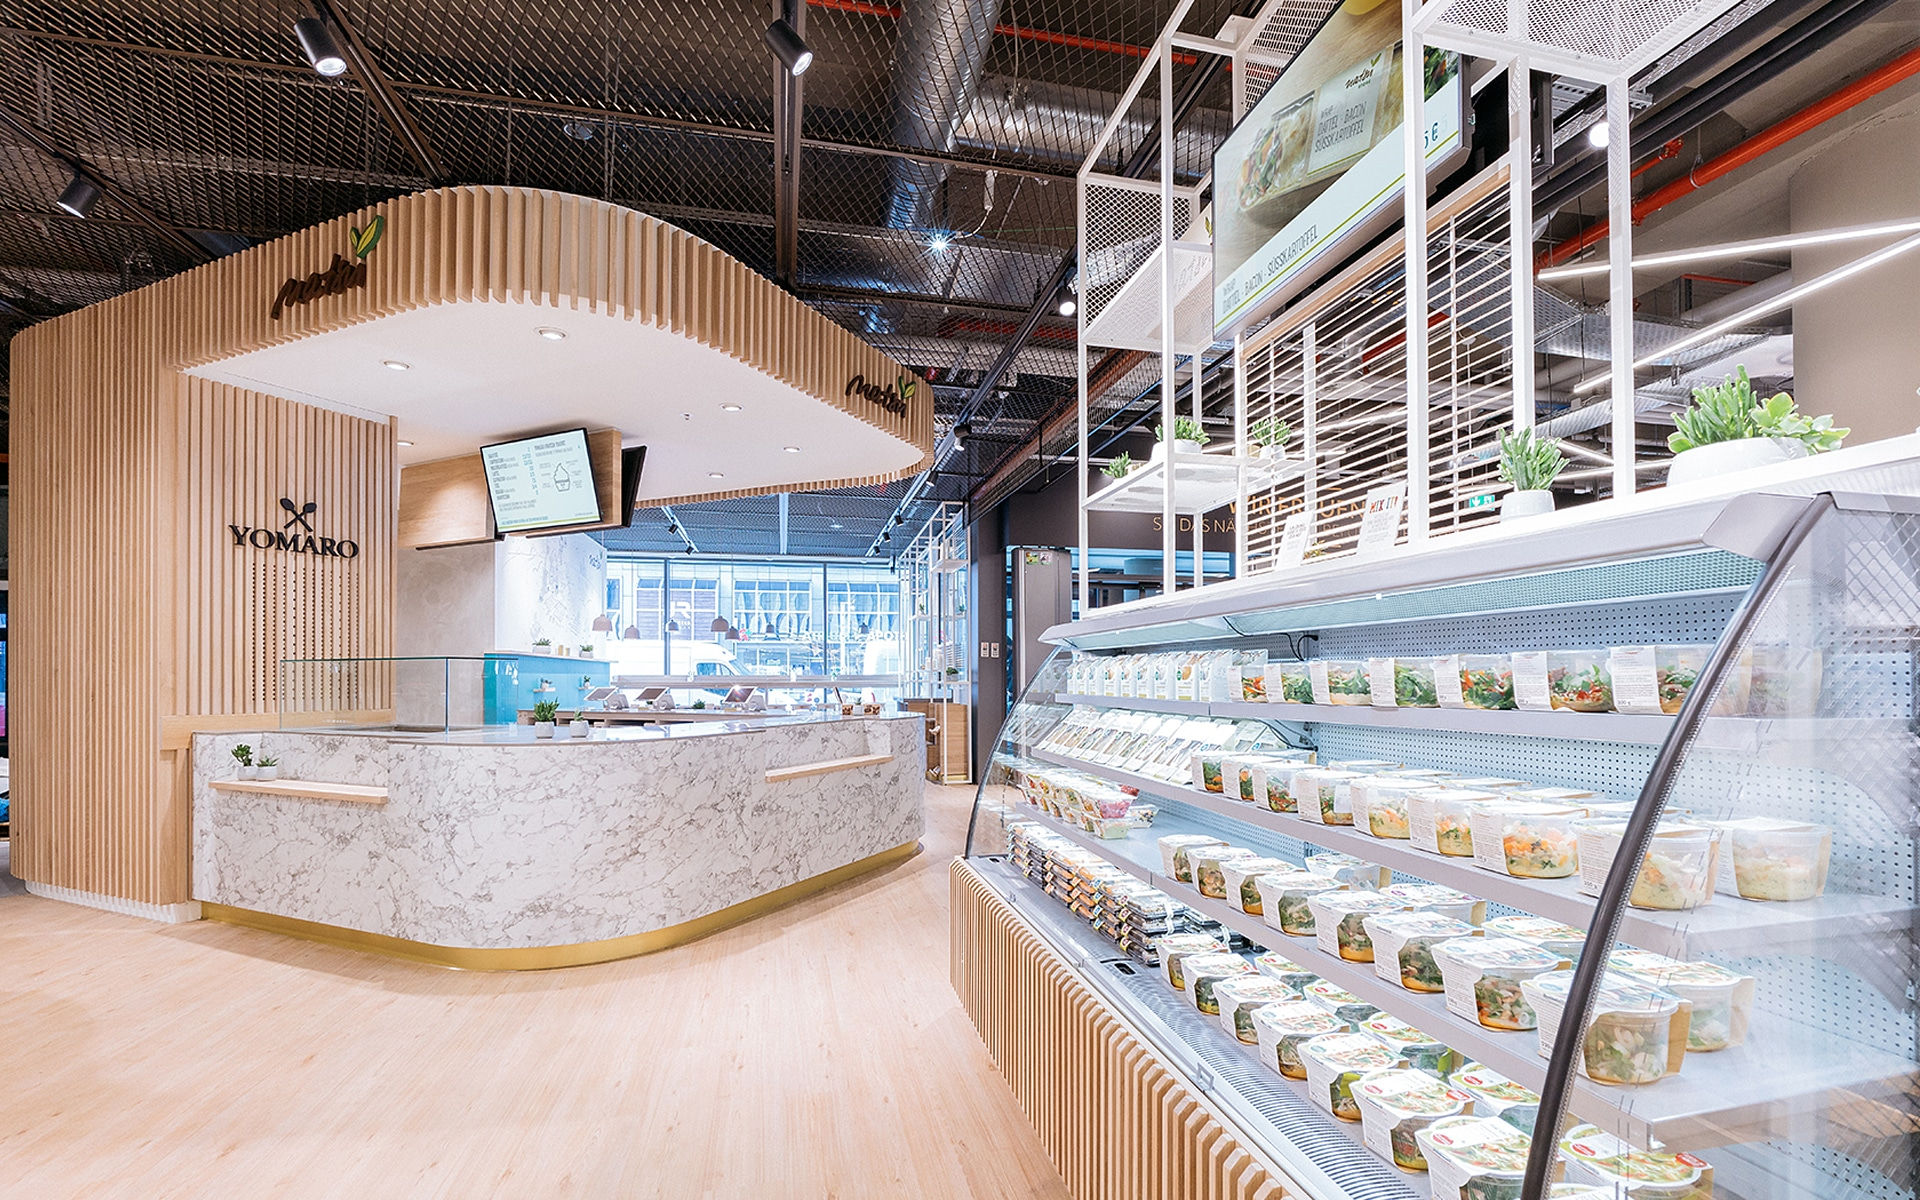 NatsuFoods Store Design Schwitzke Project